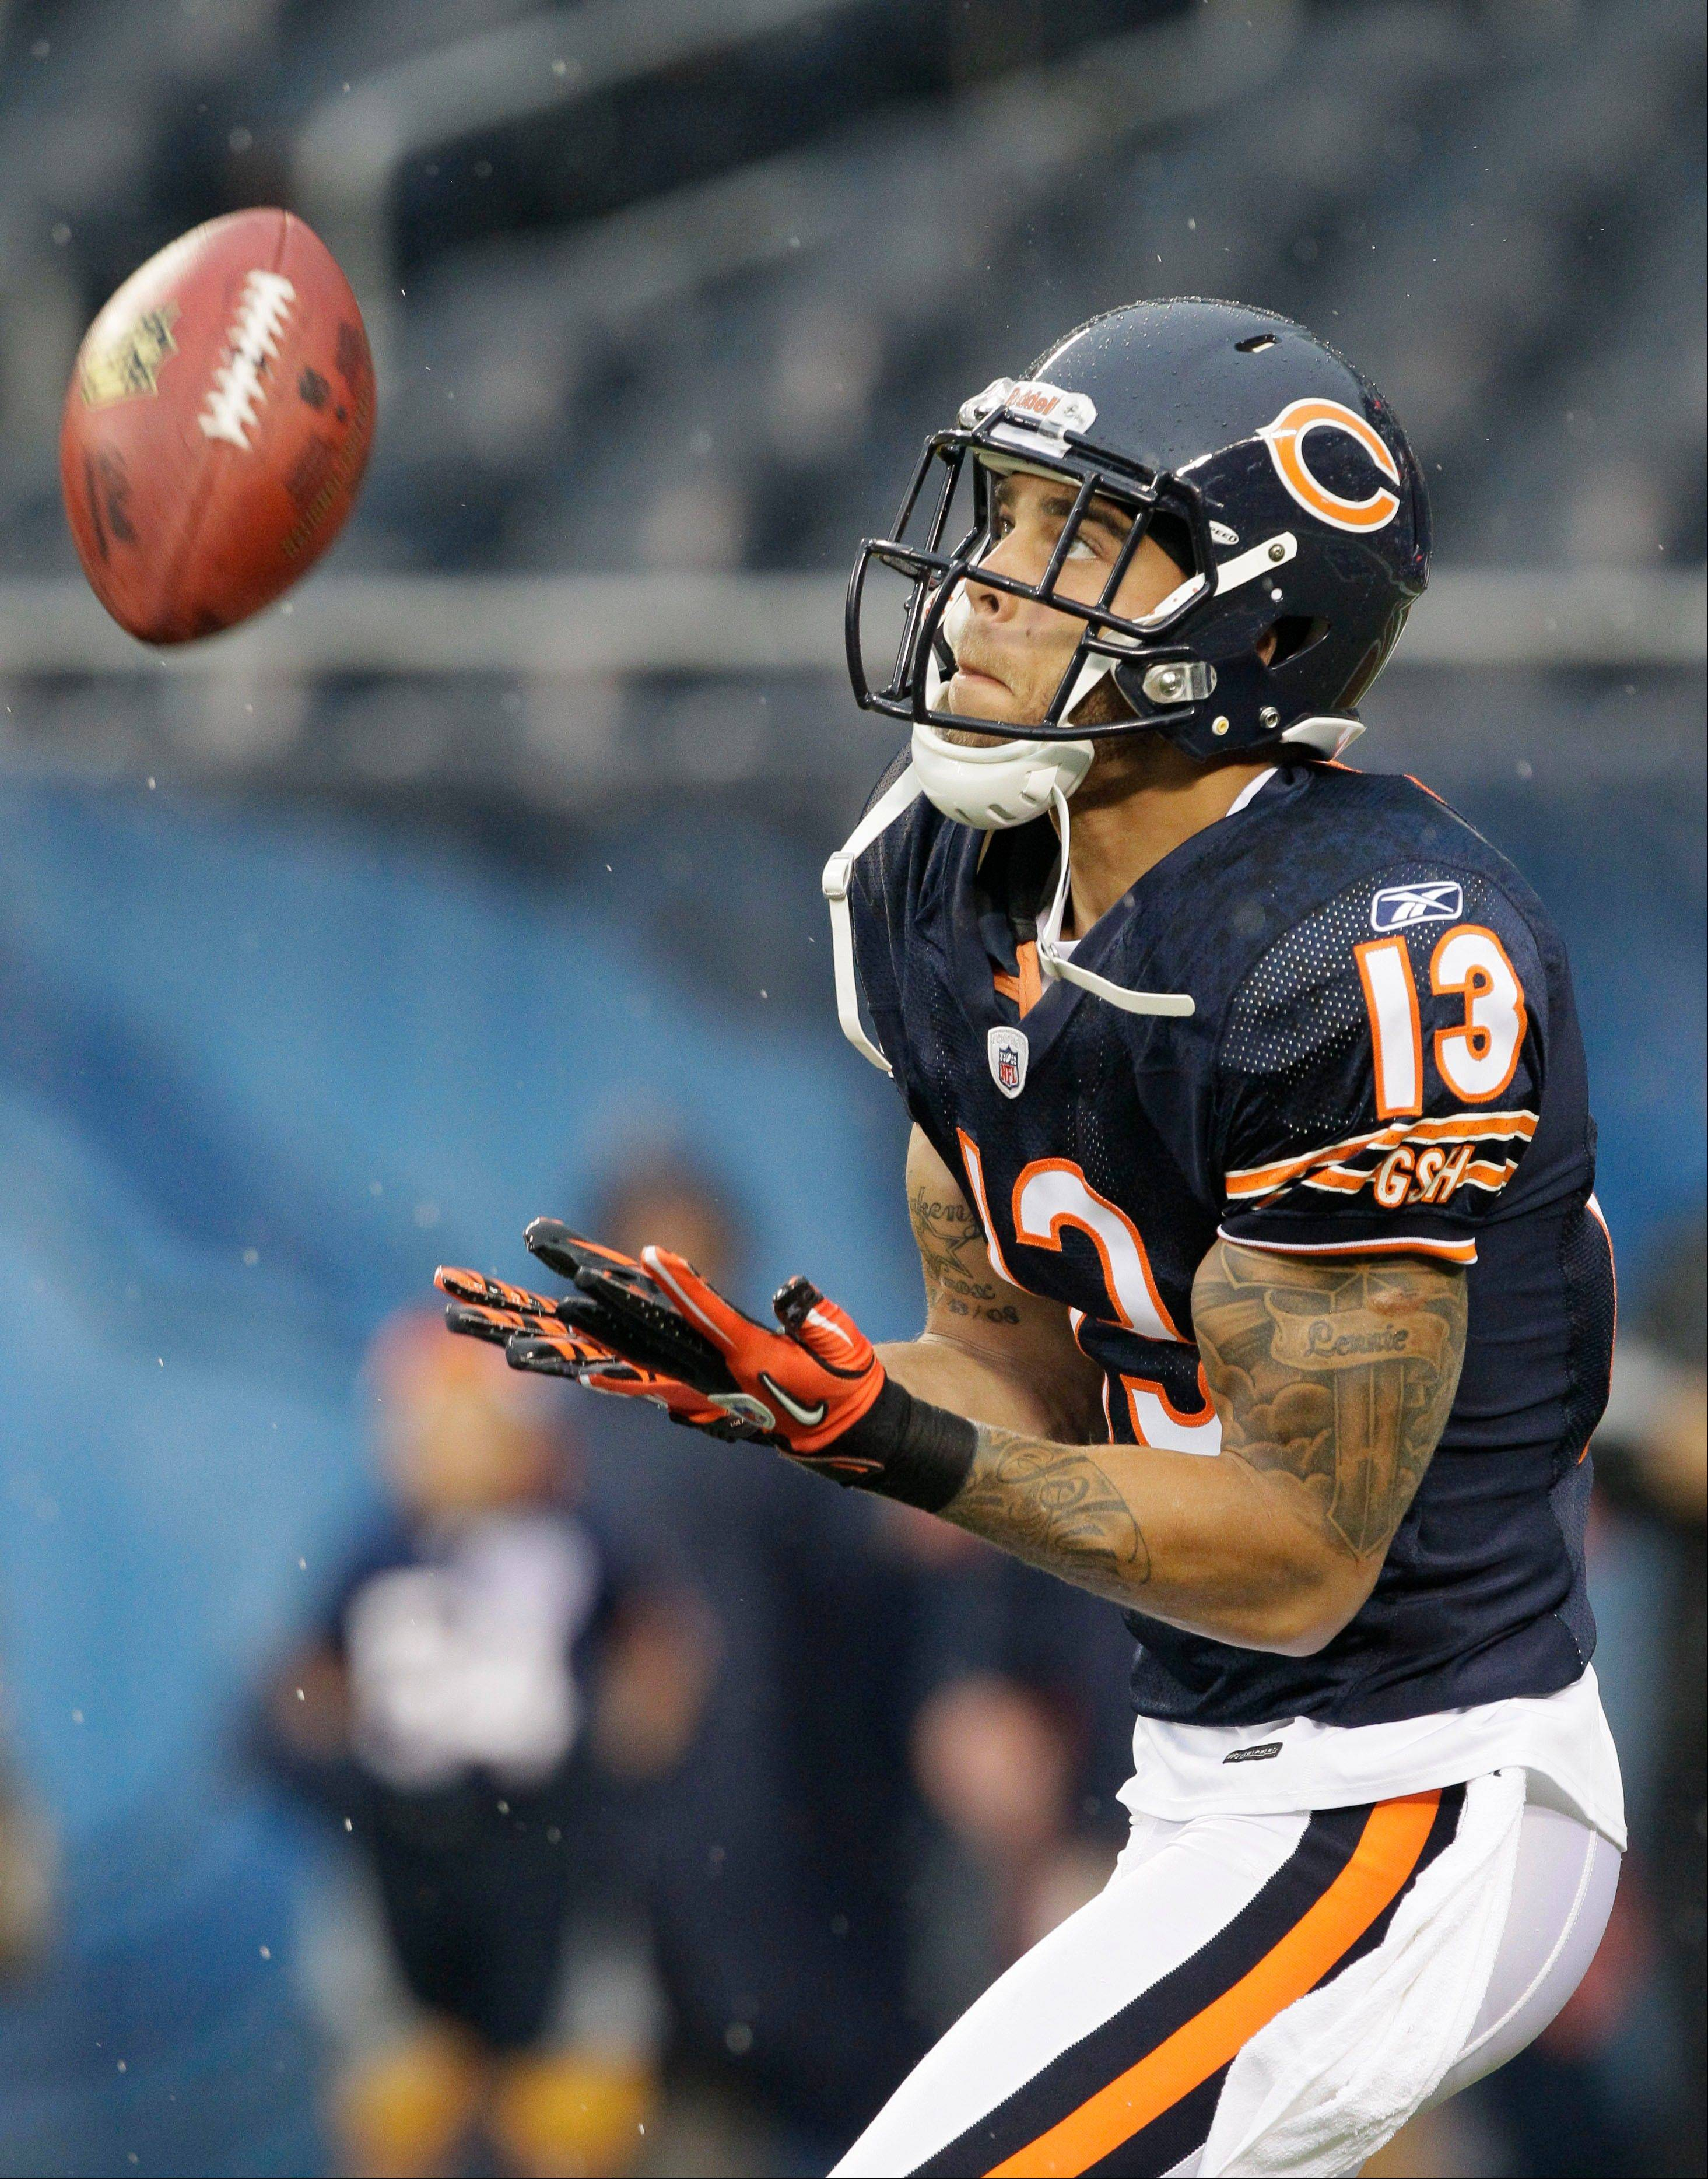 After leading the team in receiving yards last season, Bears wide receiver Johnny Knox finds himself fighting for playing time with the acquisition of veteran Roy Williams, who was given a spot with the first team offense.